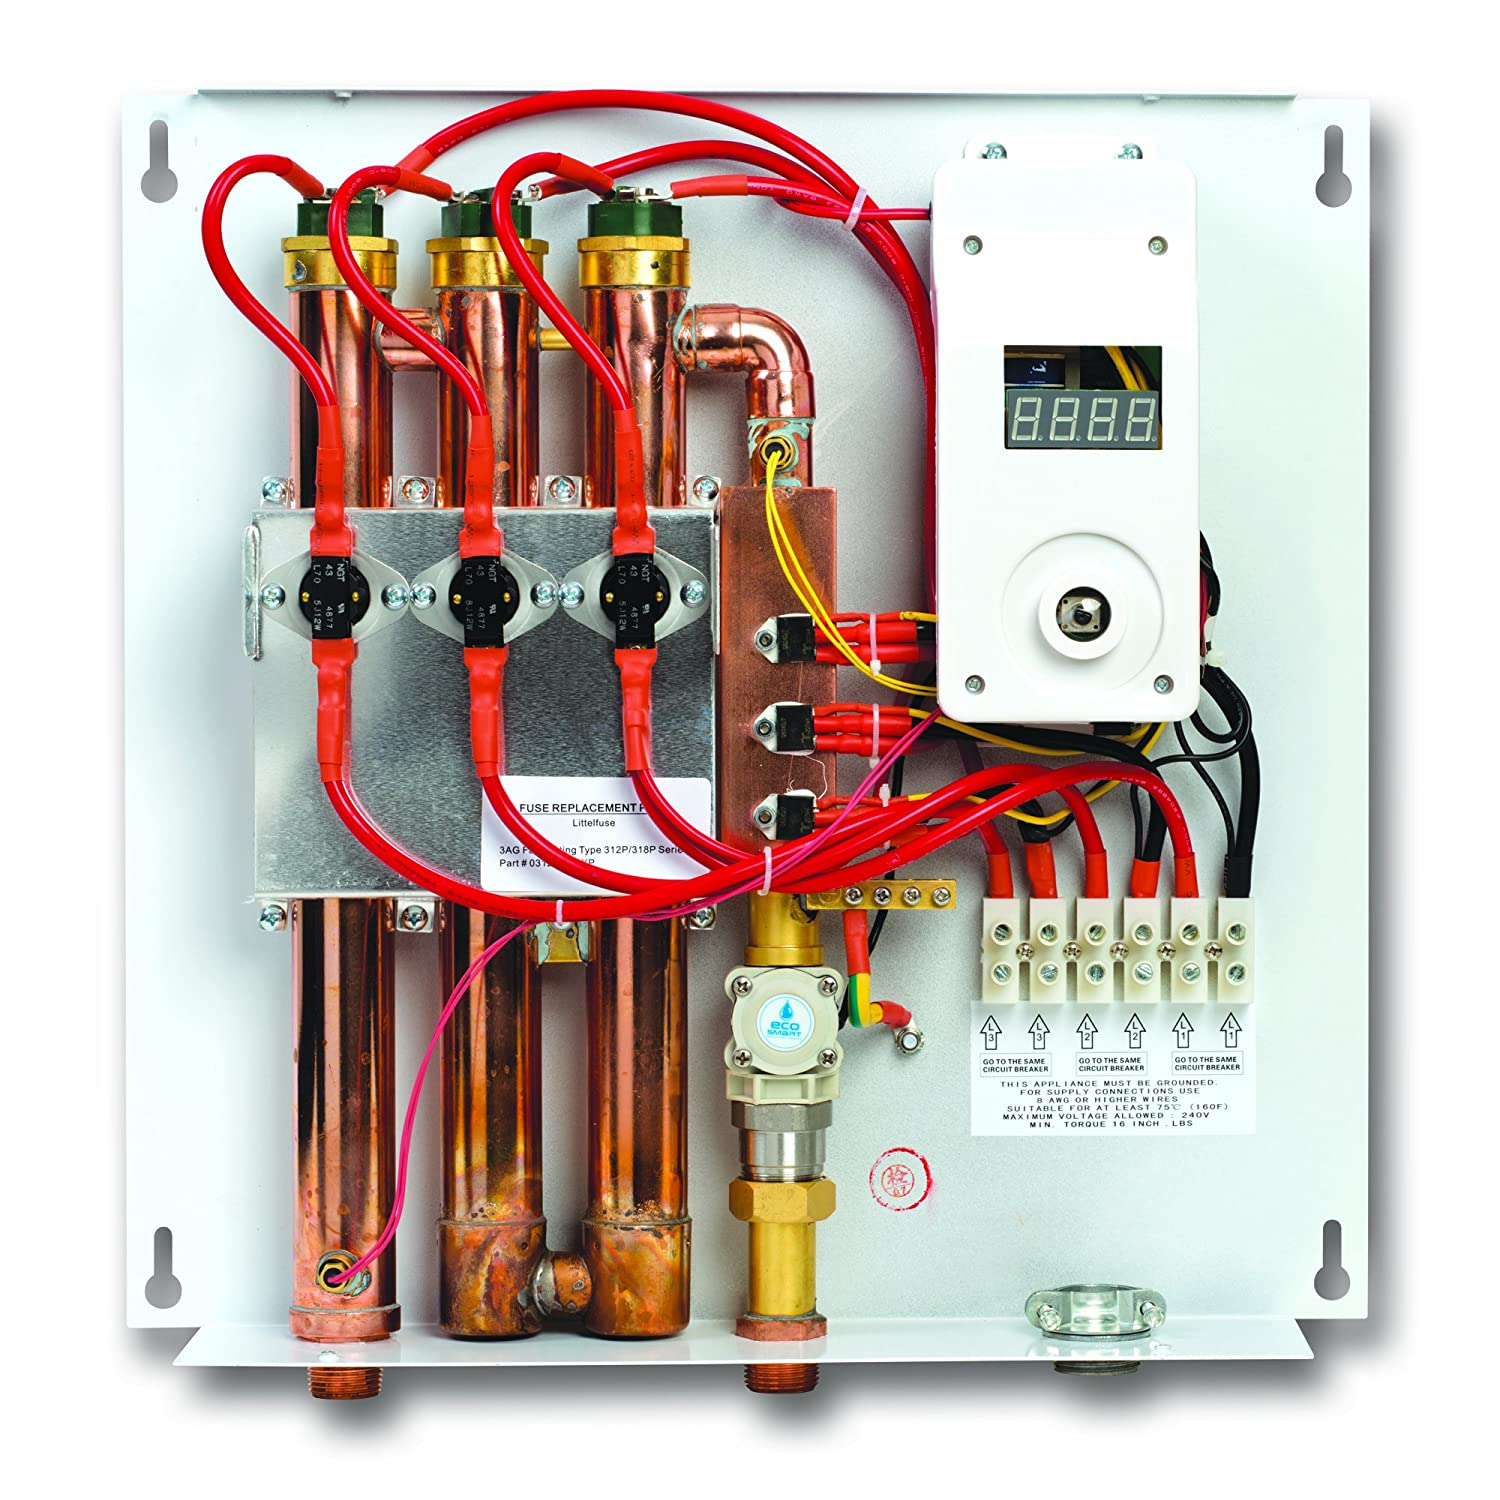 Ecosmart Eco 24 Kw At 240 Volt Electric Tankless Water Heater Hose Pipe Further Hot Wiring Diagram With Patented Self Modulating Technology